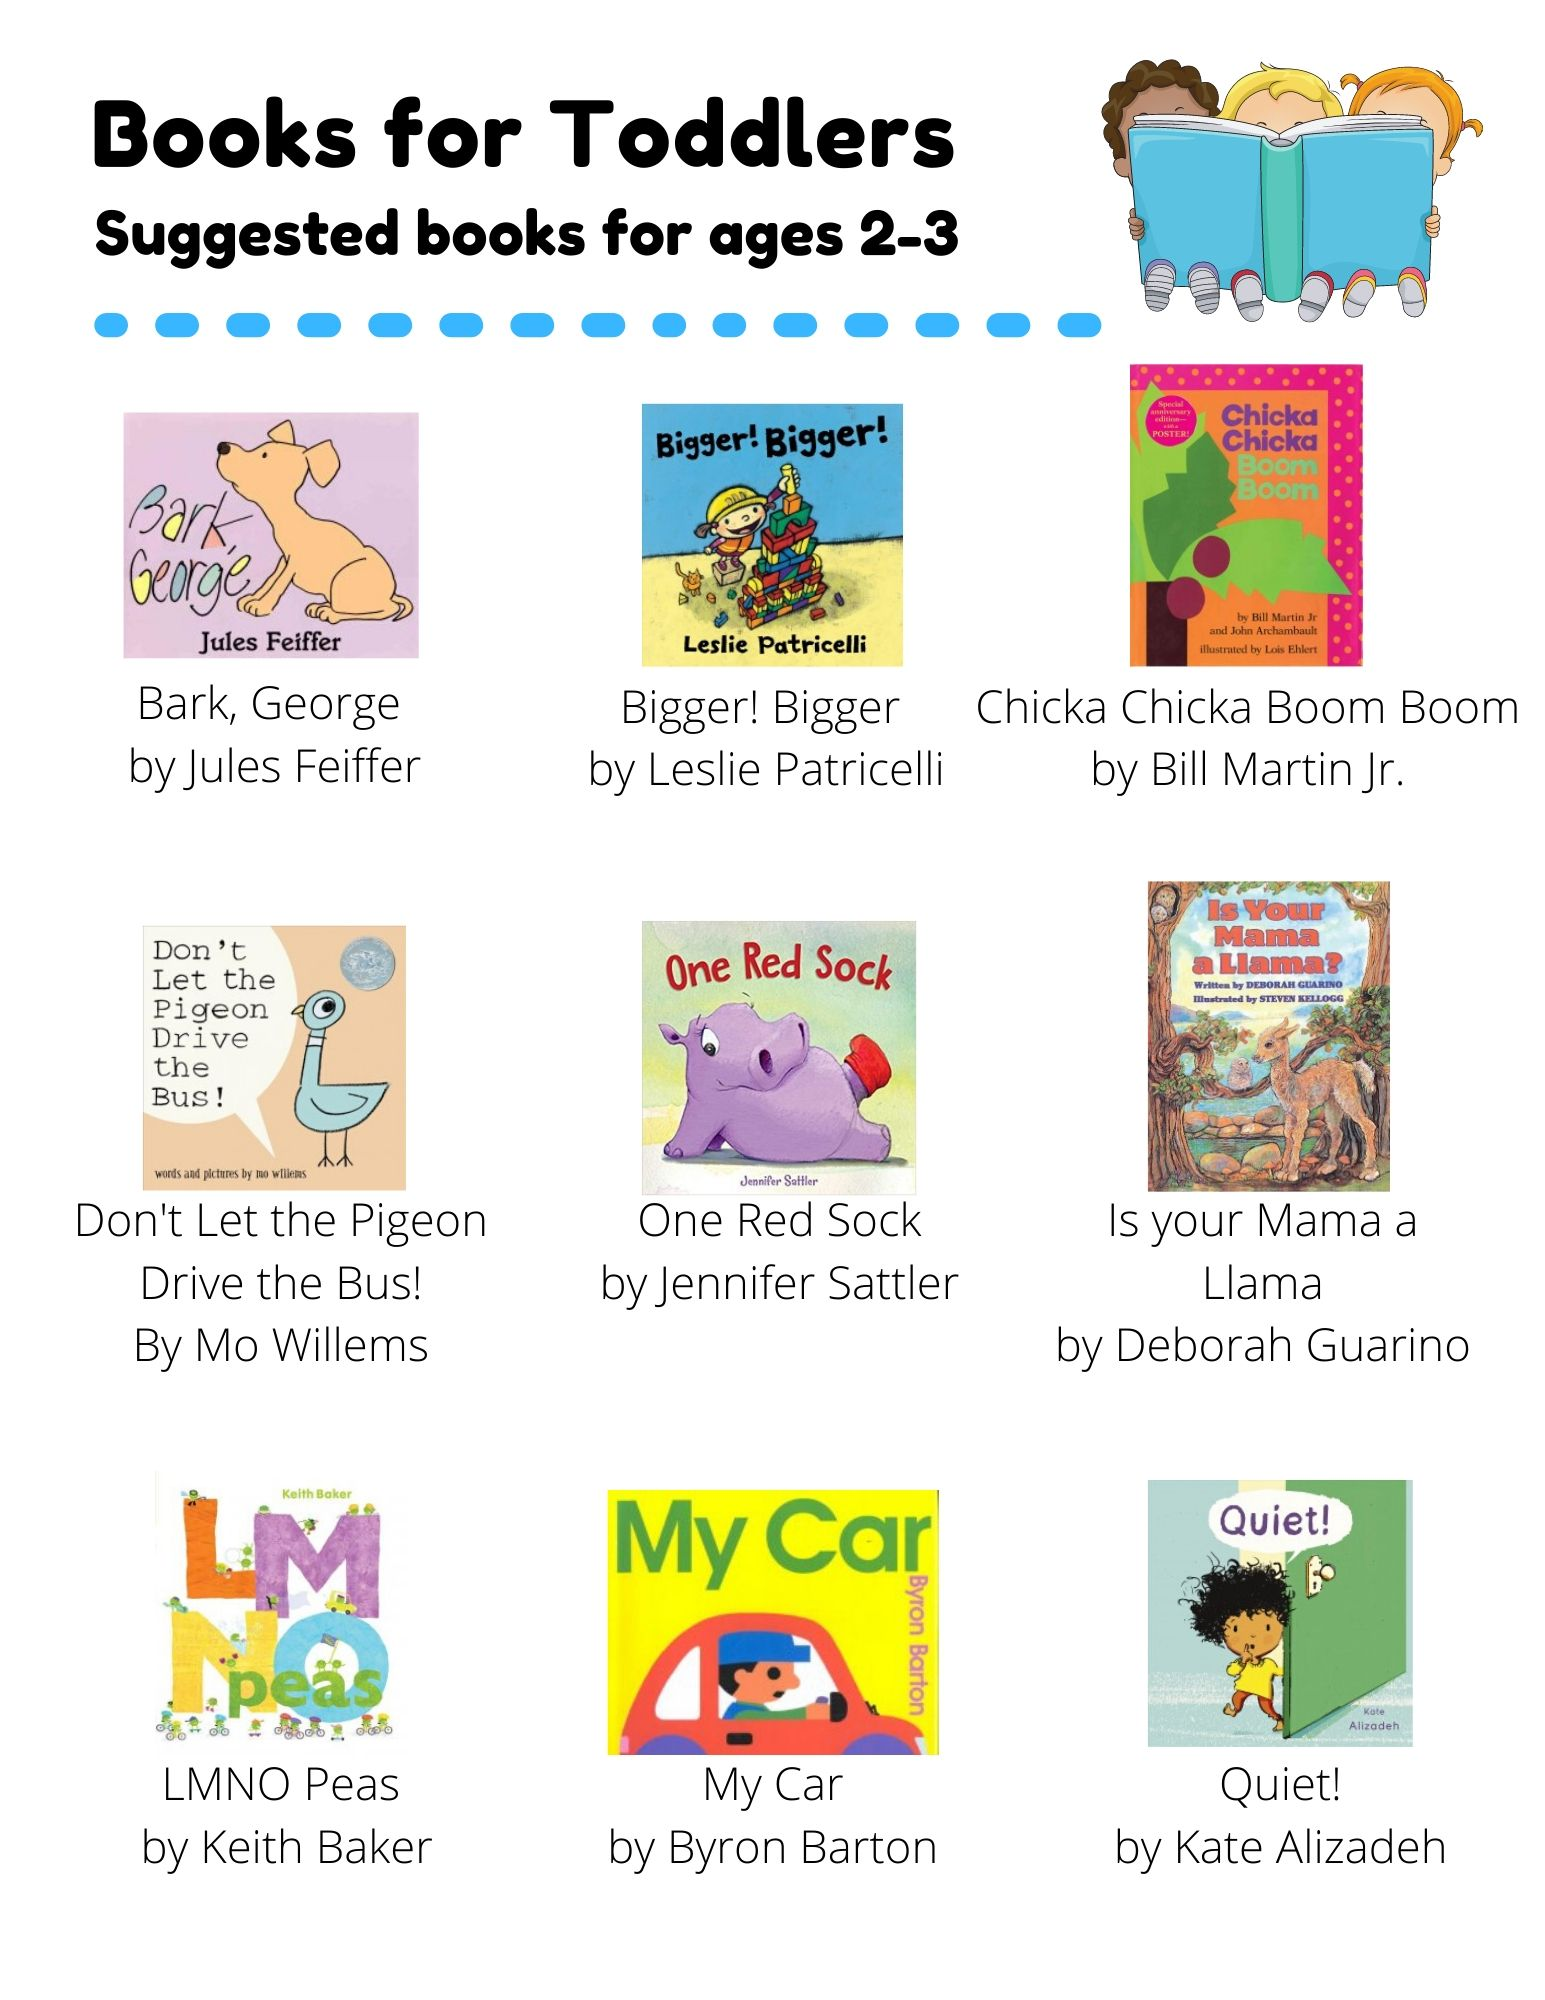 Books for Toddlers: Suggested books for ages 2-3. Bark, George  by Jules Feiffer. Bigger! Bigger  by Leslie Patricelli. Chicka Chicka Boom Boom by Bill Martin Jr.. Don't Let the Pigeon Drive the Bus! By Mo Willems. One Red Sock by Jennifer Sattler. Is your Mama a Llama by Deborah Guarino. LMNO Peas  by Keith Baker. My Car by Byron Barton. Quiet! by Kate Alizadeh. Quit Calling Me a Monster by Jory John. Hooray for Hat! by Brian Won. Freight Train by Donald Crews. Sheep in a Jeep by Nancy E. Shaw. Goodnight, Goodnight, Construction Site by Sherri Duskey Rinker. Press Here by Herve Tullet. The Good Egg by Jory John. Escargot by Dashka Slater. Little Blue Truck by Alice Schertle. Llama Llama Red Pajama by Anna Dewdney. The Pout-Pout Fish by Deborah Diesen. Say Hello by Rachel Isadora.